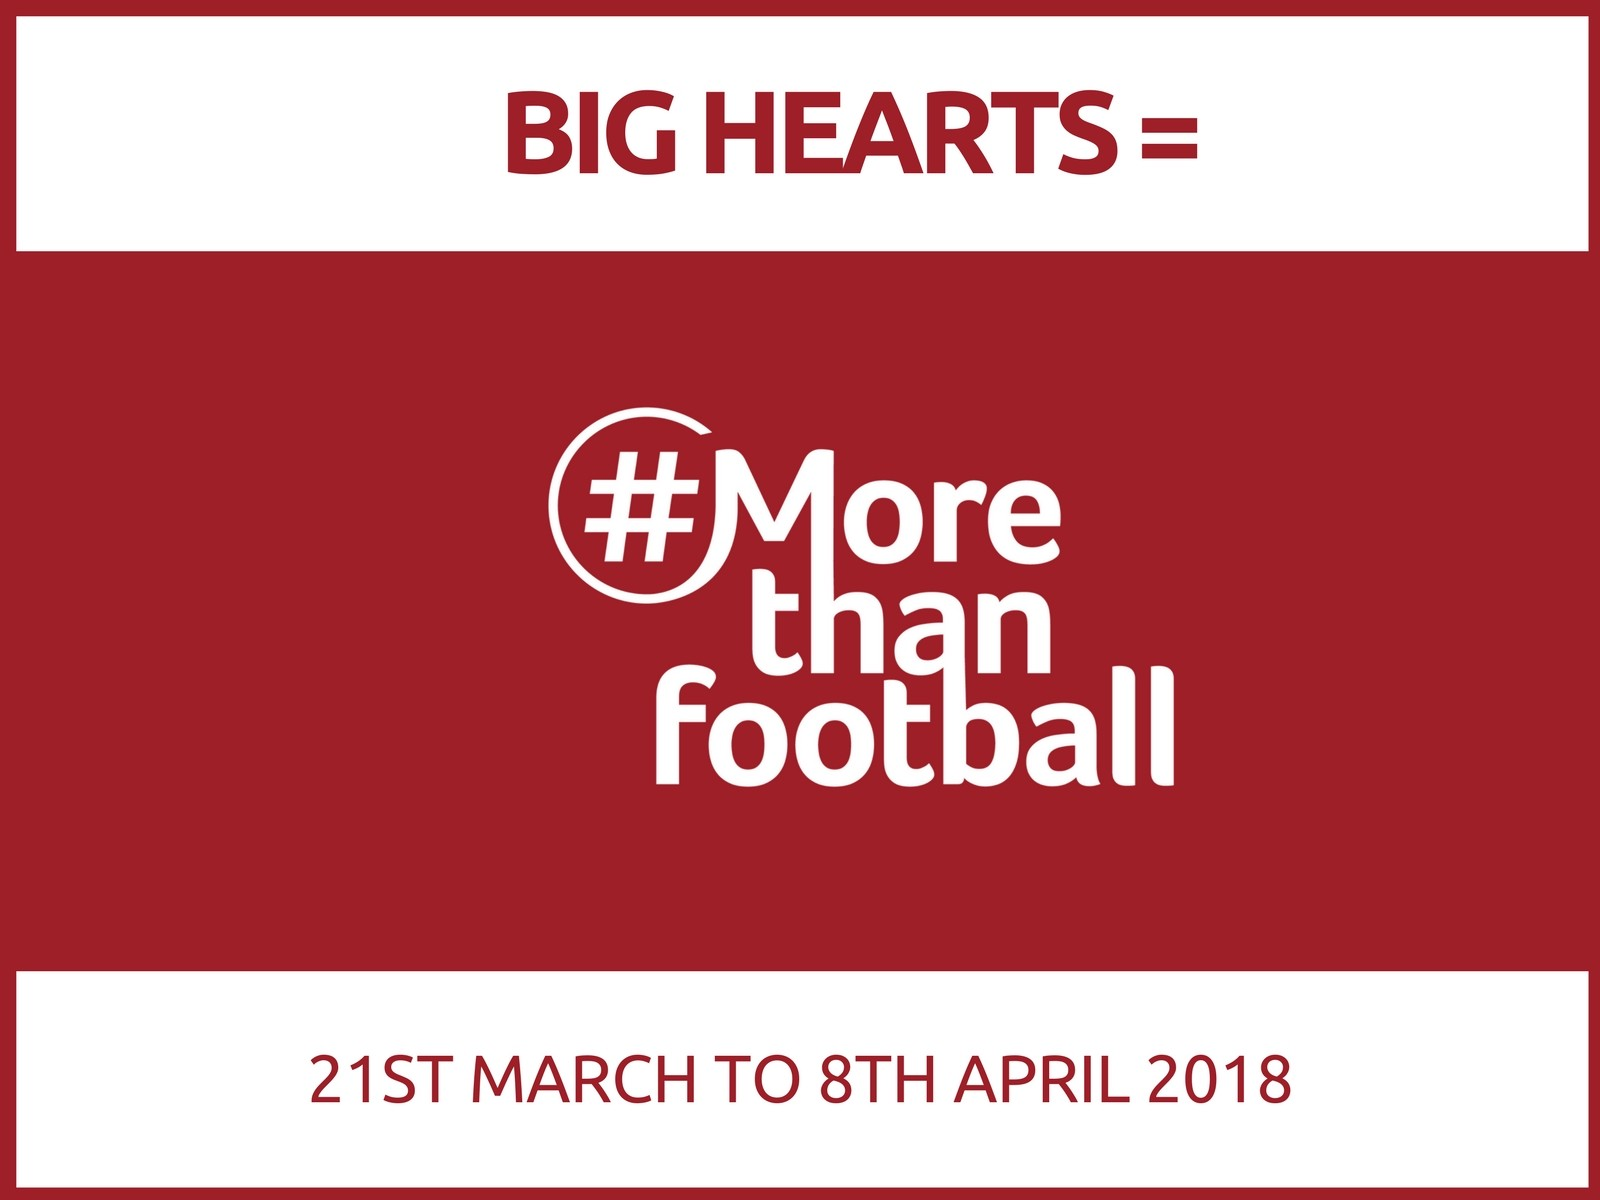 » Big Hearts is More Than Football – Campaign & Activities 2018